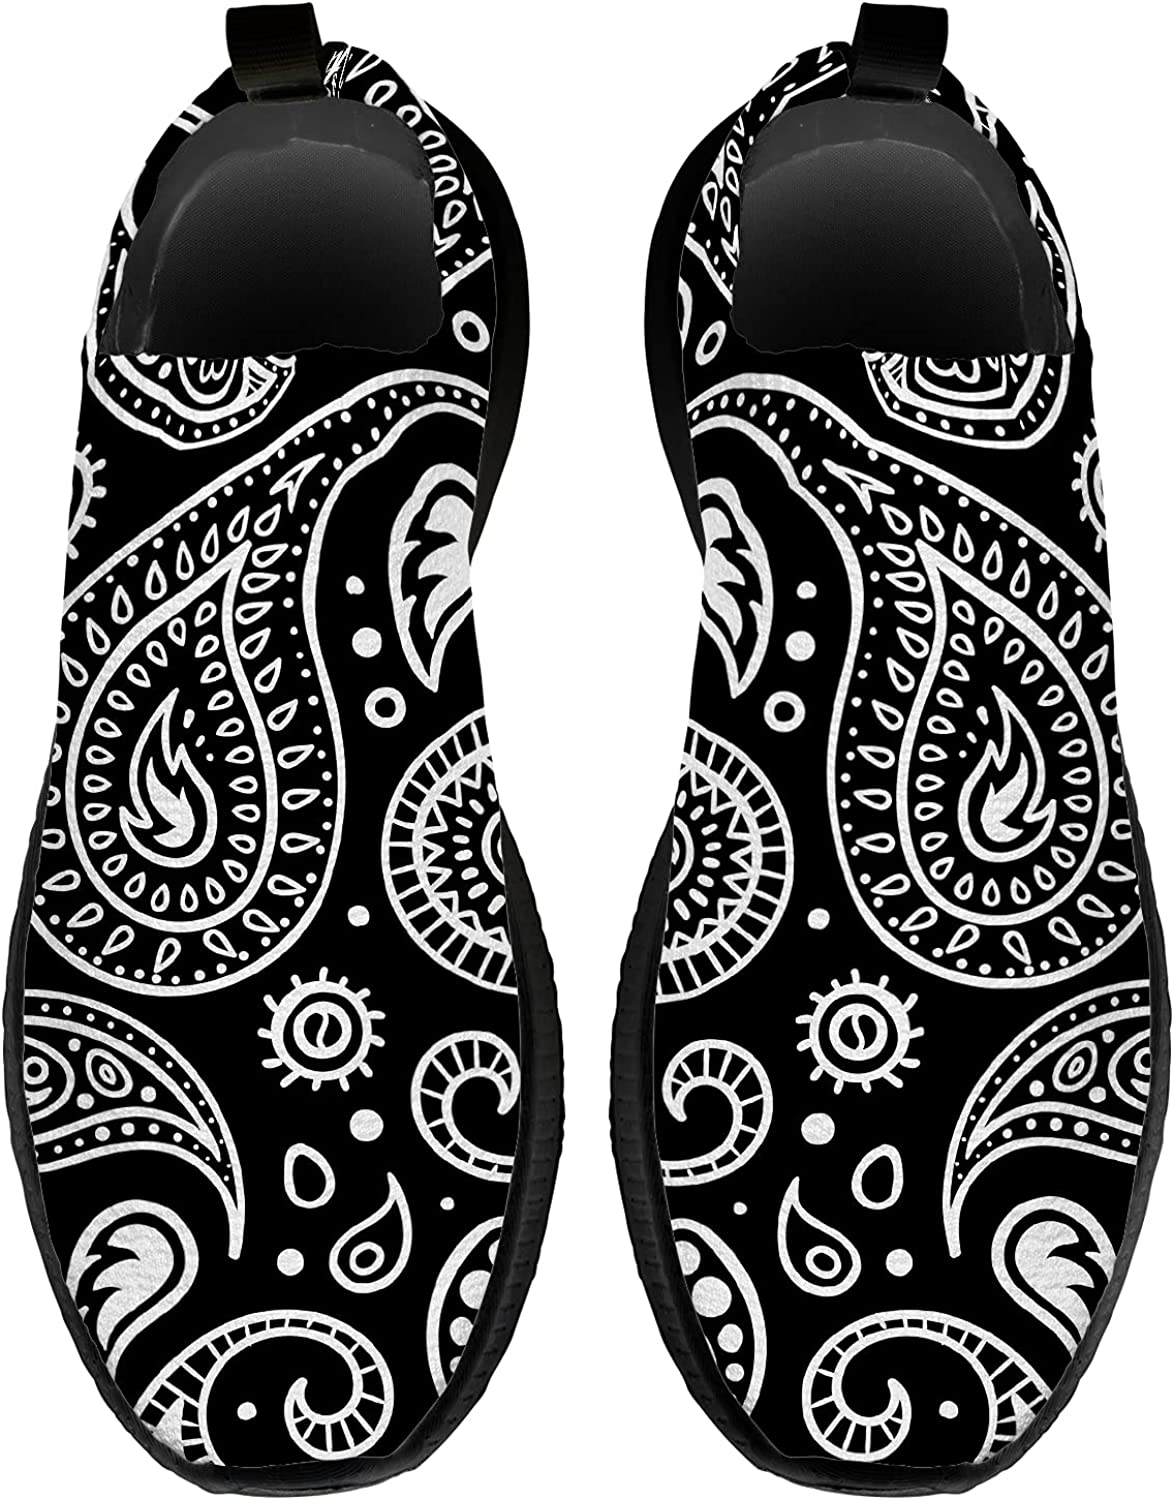 EXCOW Paisley Shoes for Women Men,3D Print Breathable Casual Soc